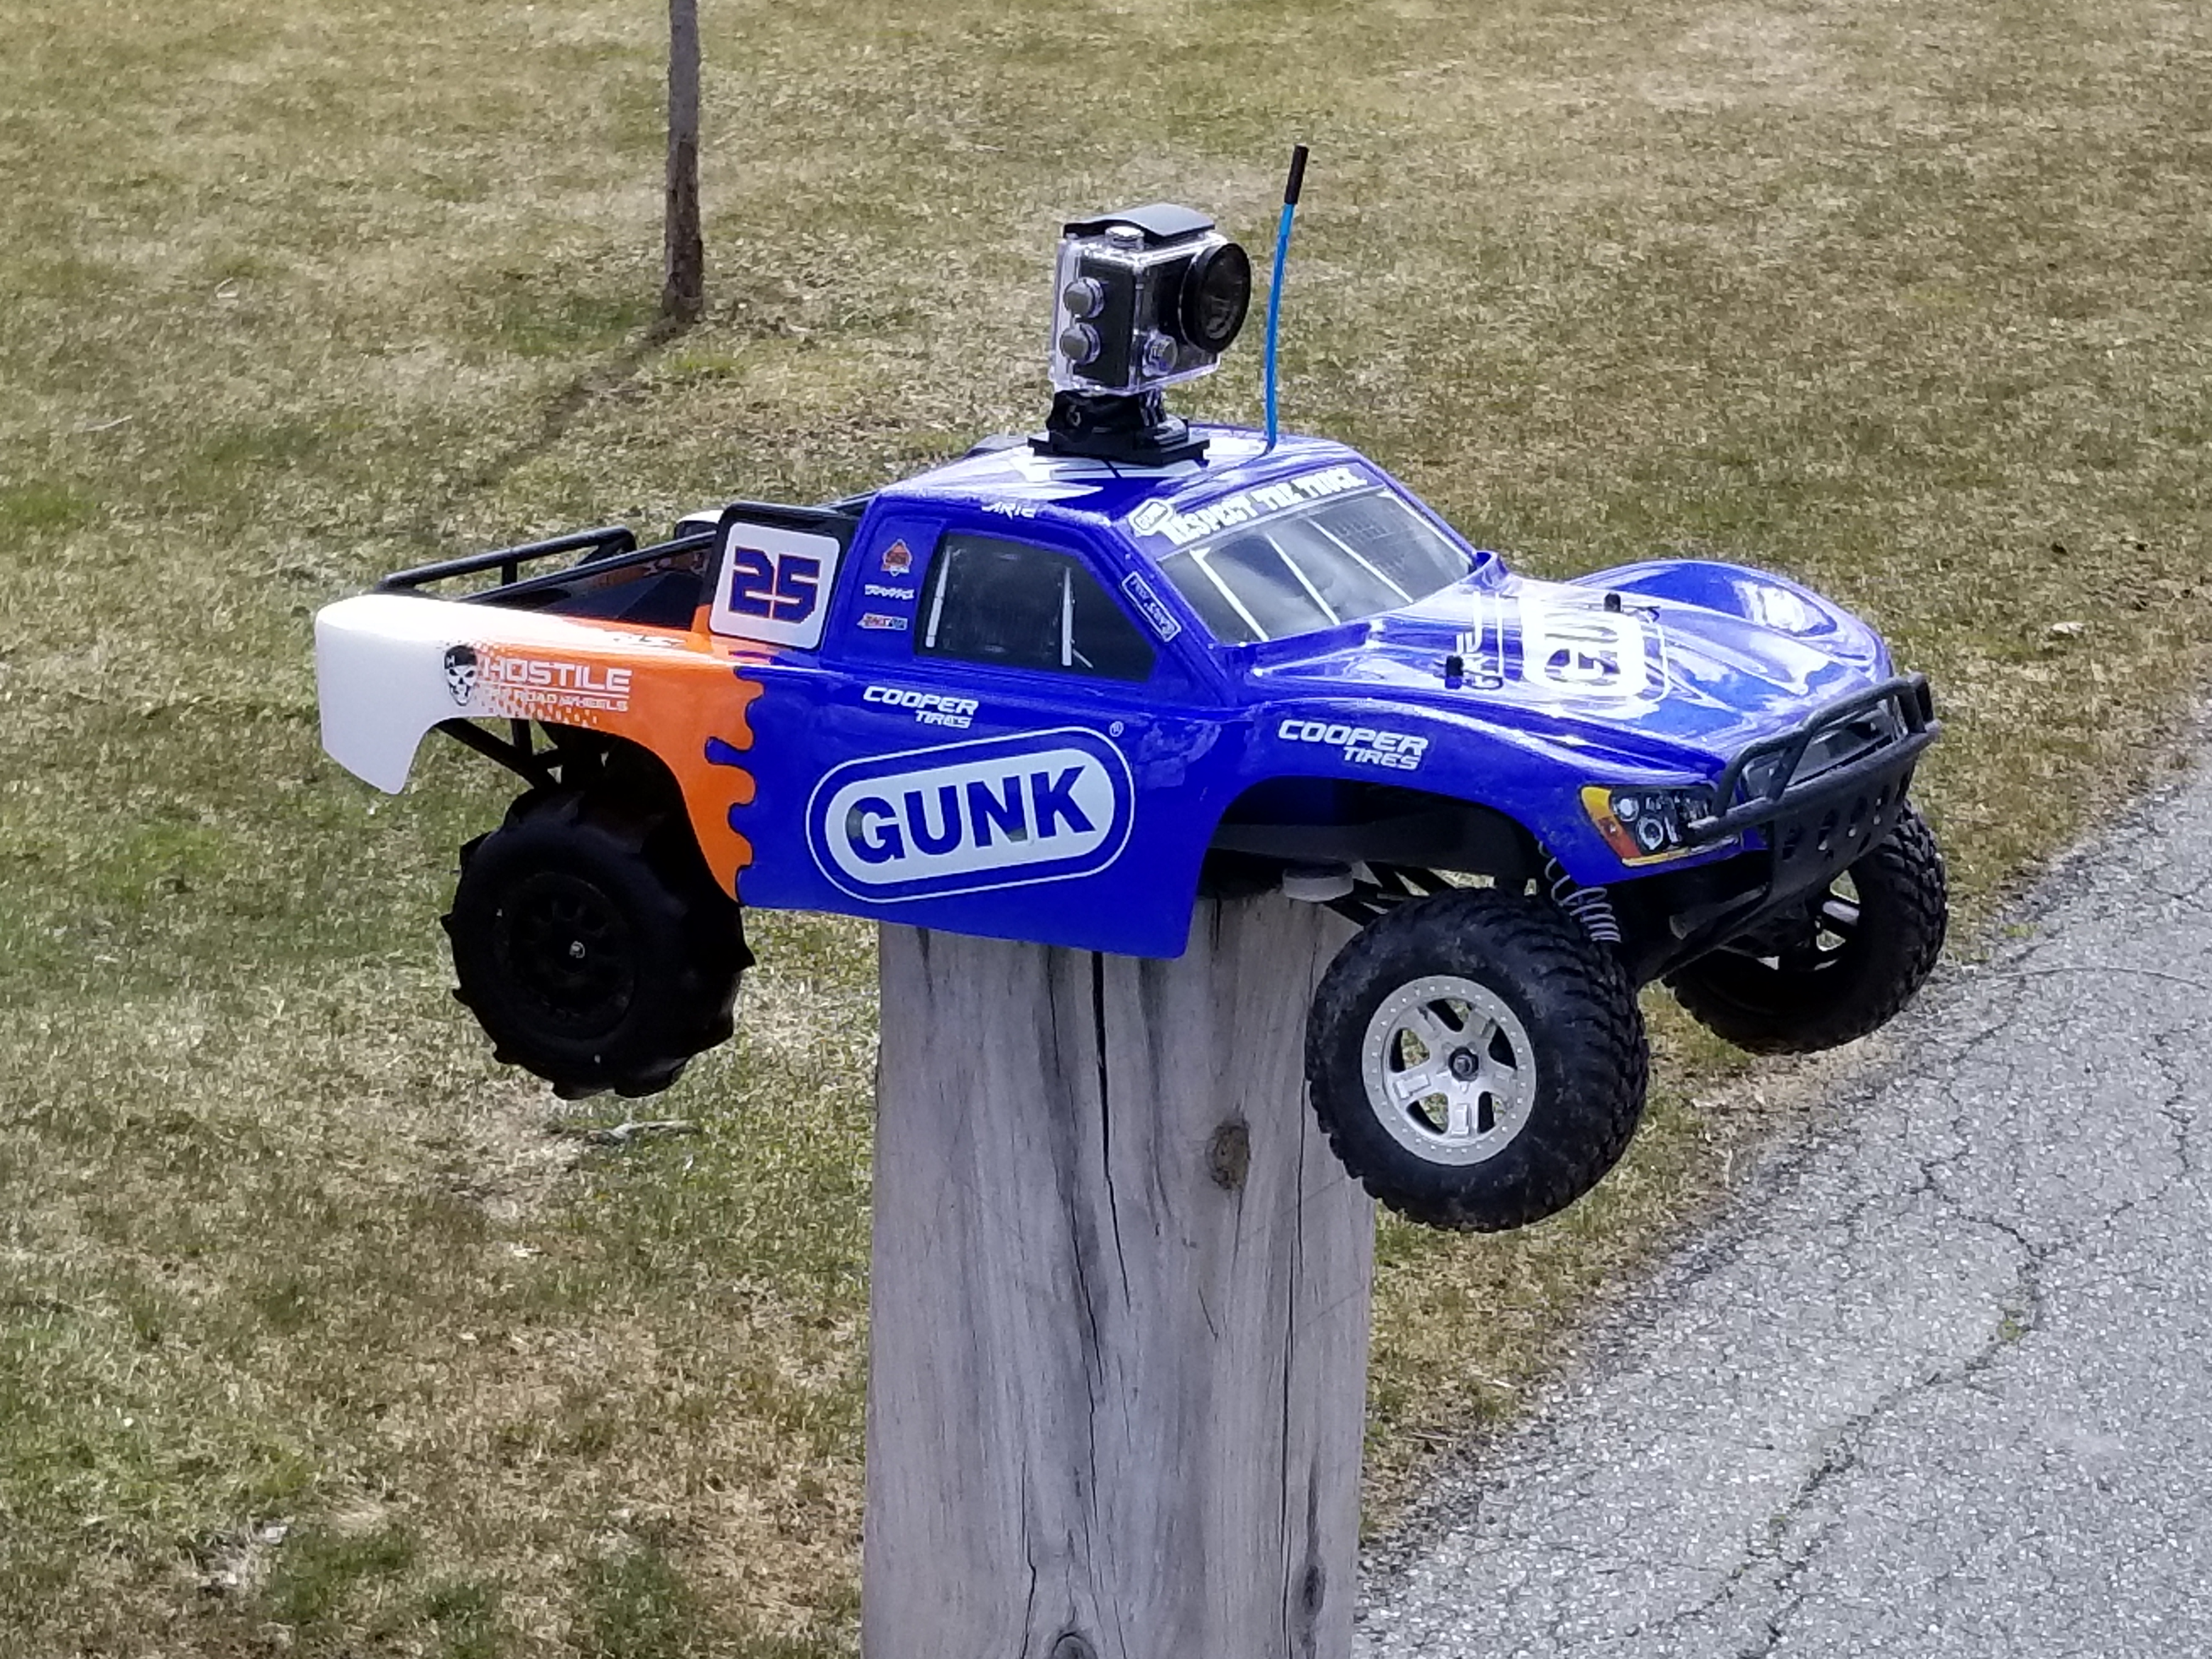 Traxxas Slash with Proline paddle tires